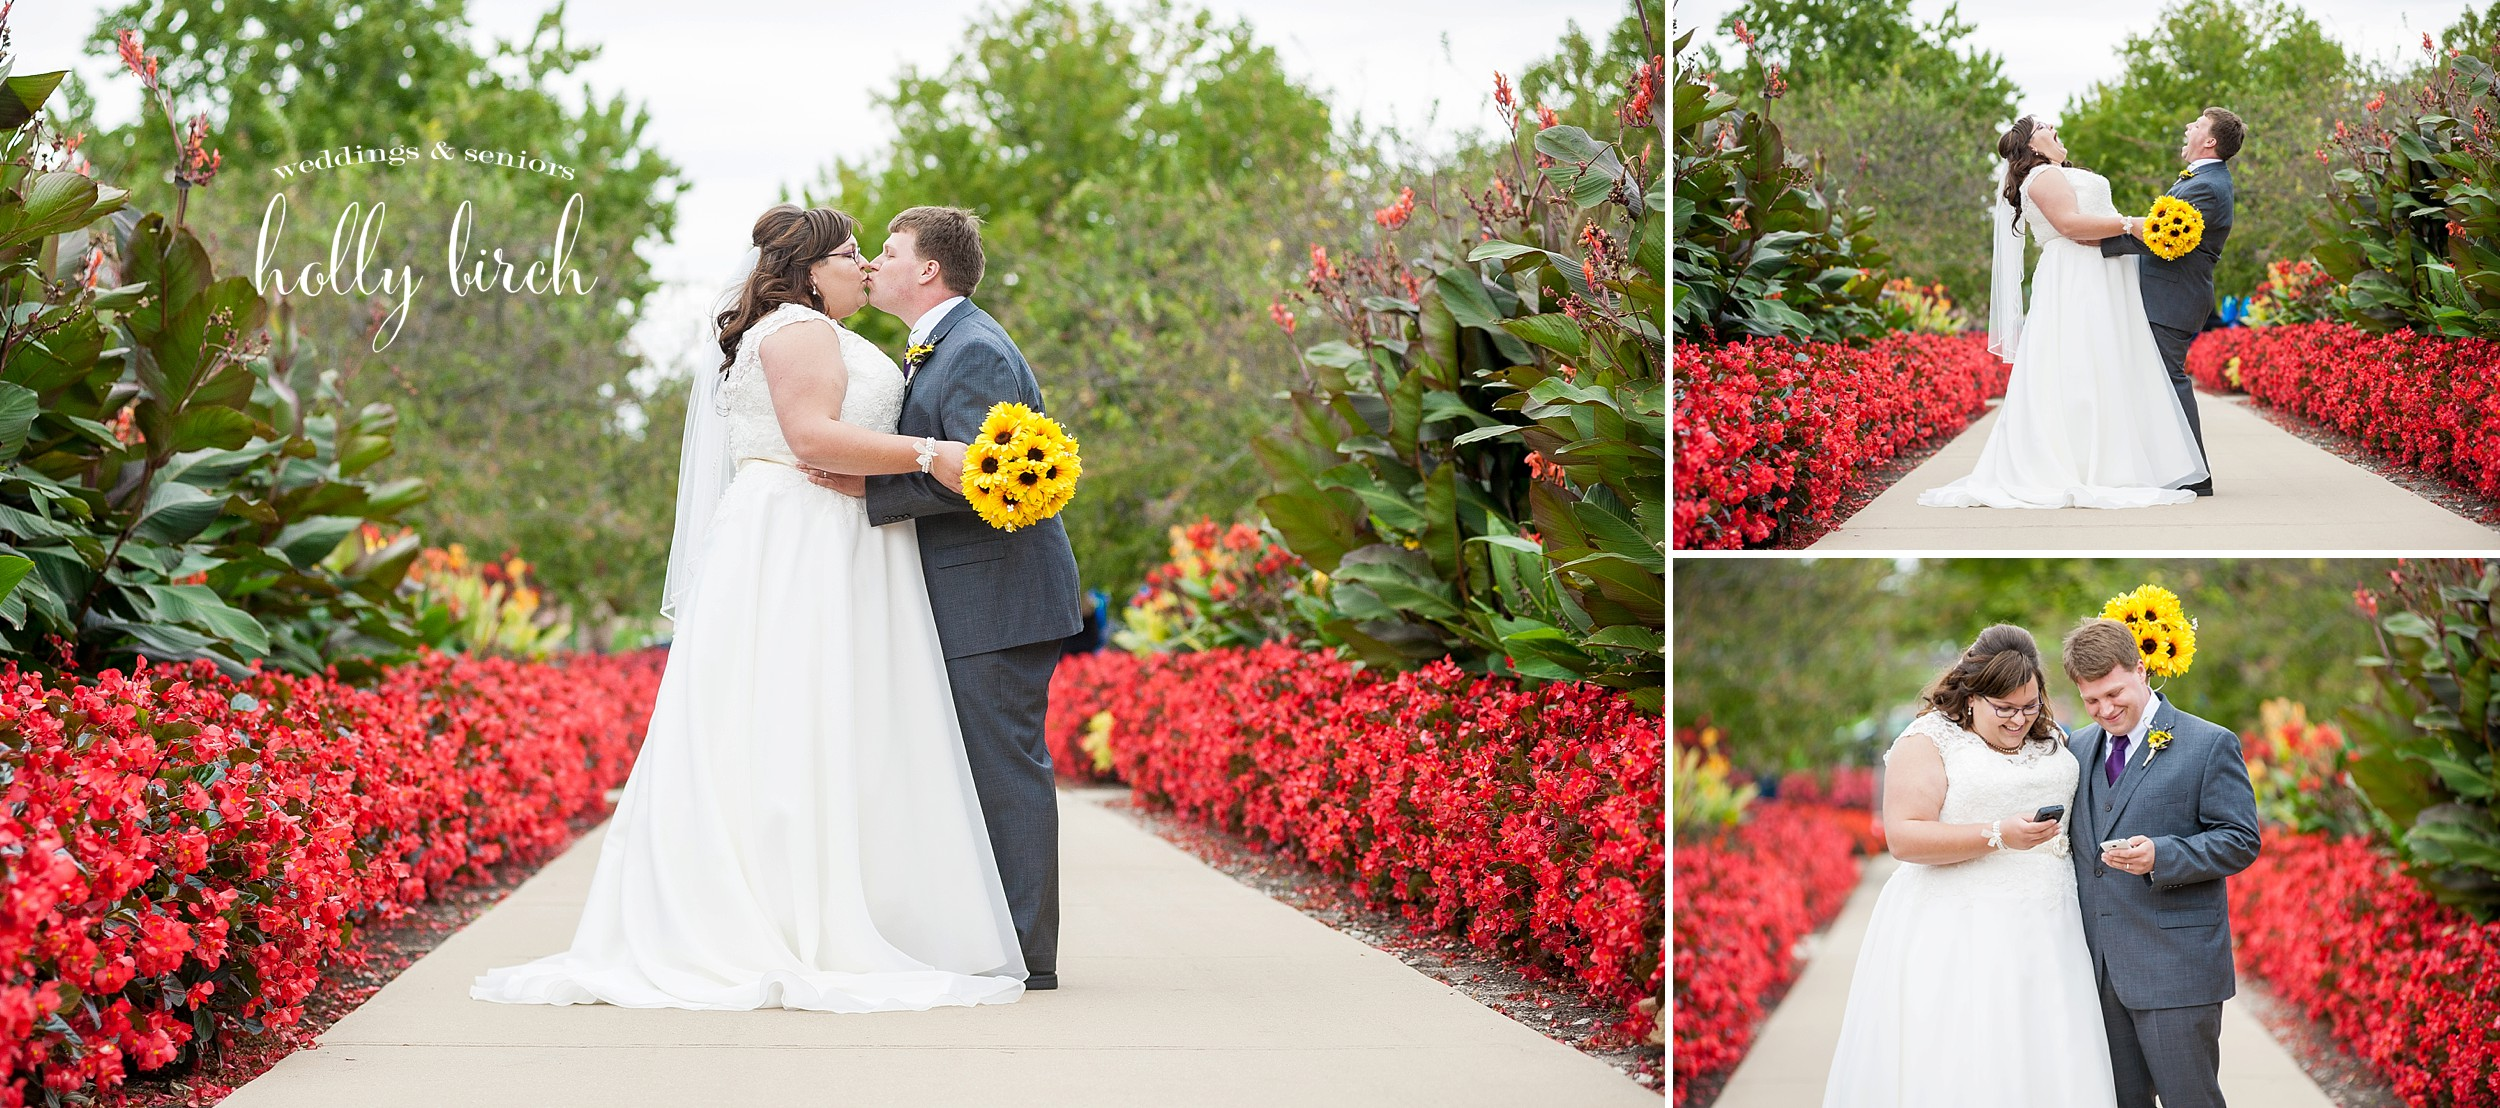 fall overcast wedding photos